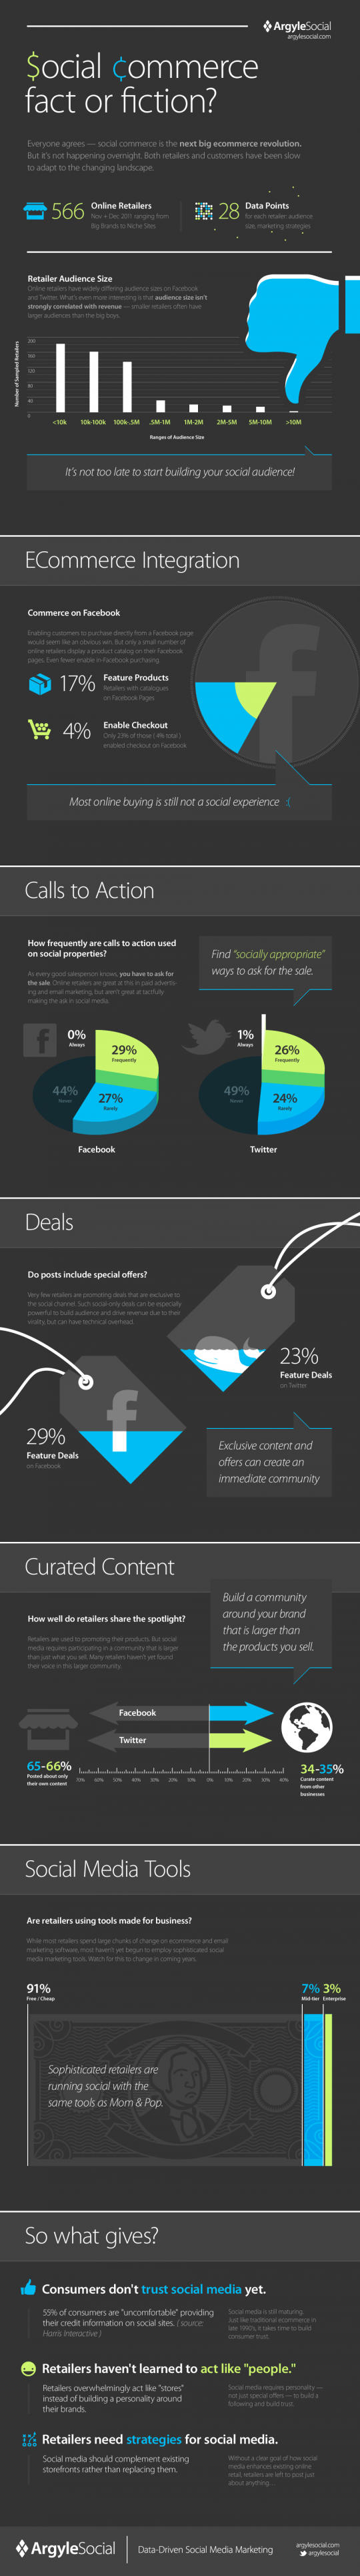 Social Commerce: Fact or Fiction